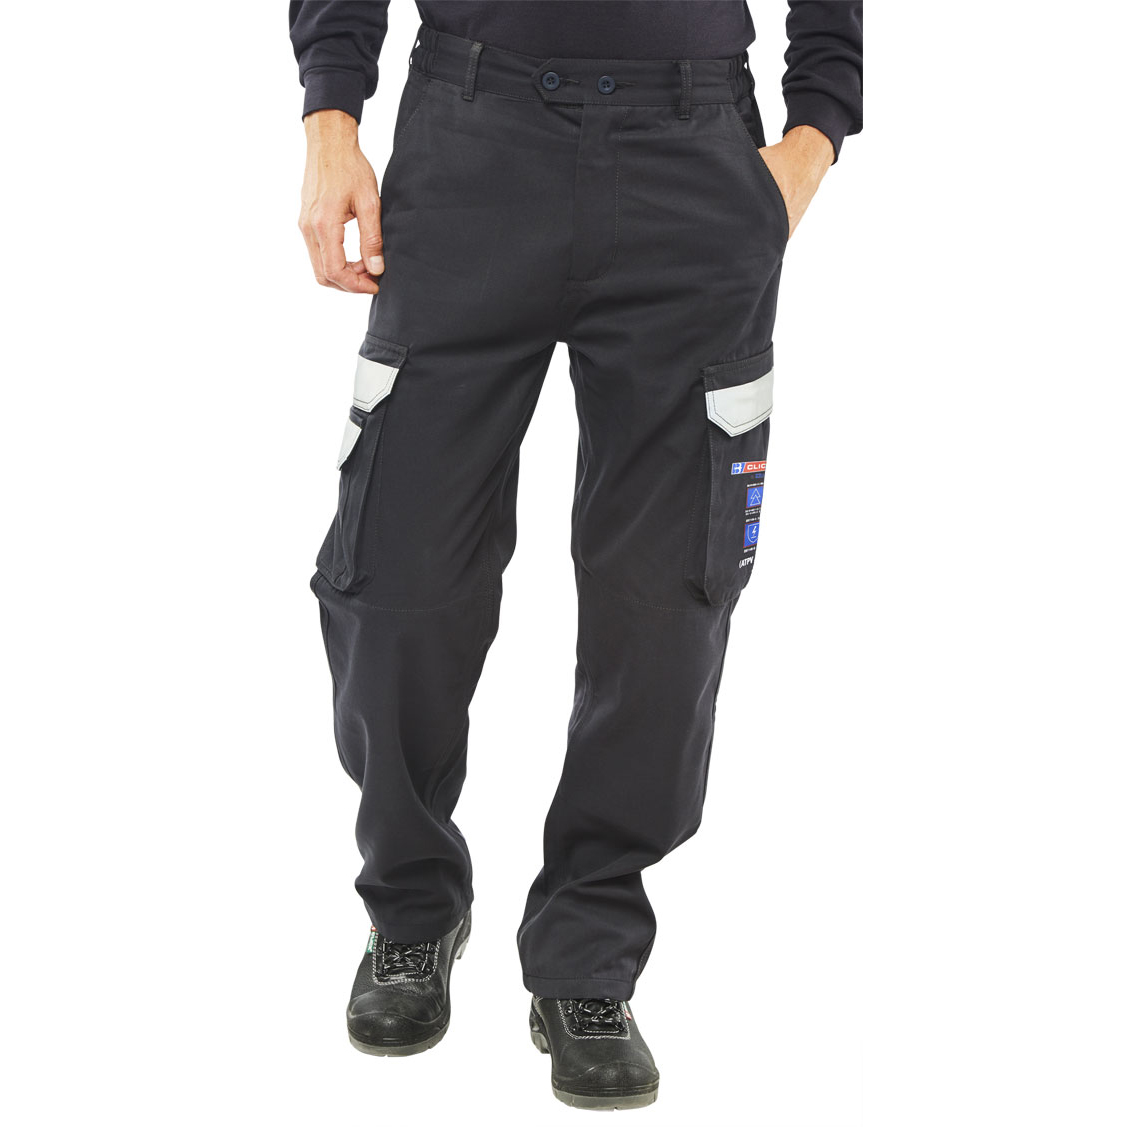 Fire Retardant / Flame Resistant Click Arc Flash Trousers Fire Retardant Navy Blue 44-Short Ref CARC4N44S *Up to 3 Day Leadtime*